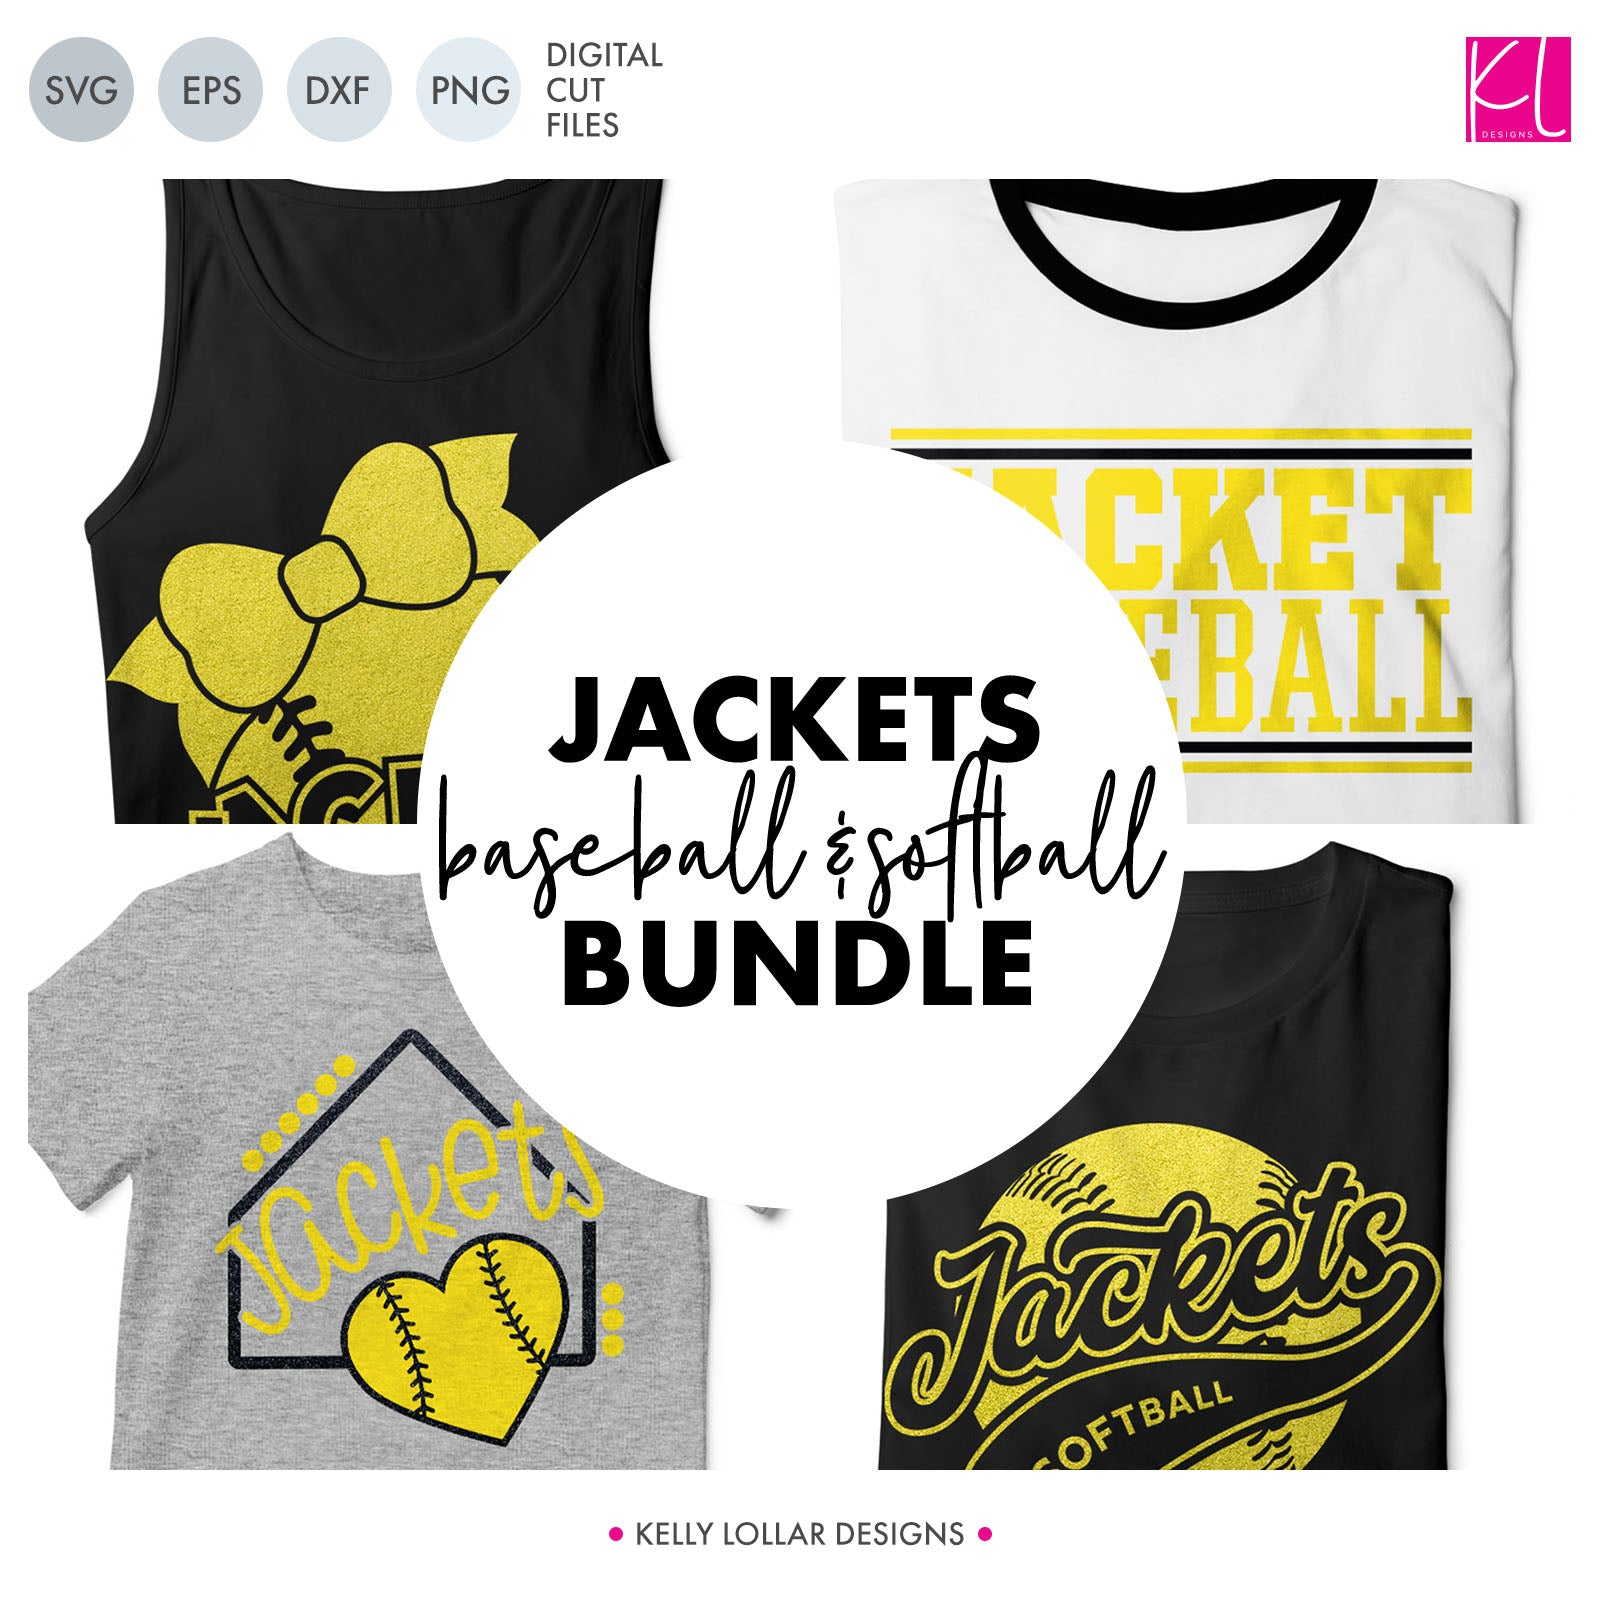 Jackets Baseball & Softball Bundle | SVG DXF EPS PNG Cut Files It's baseball and softball season, so Jacket crafter know what that means ... new spirit shirts! This fifteen-piece bundle includes a little something for everyone - from girly and cute